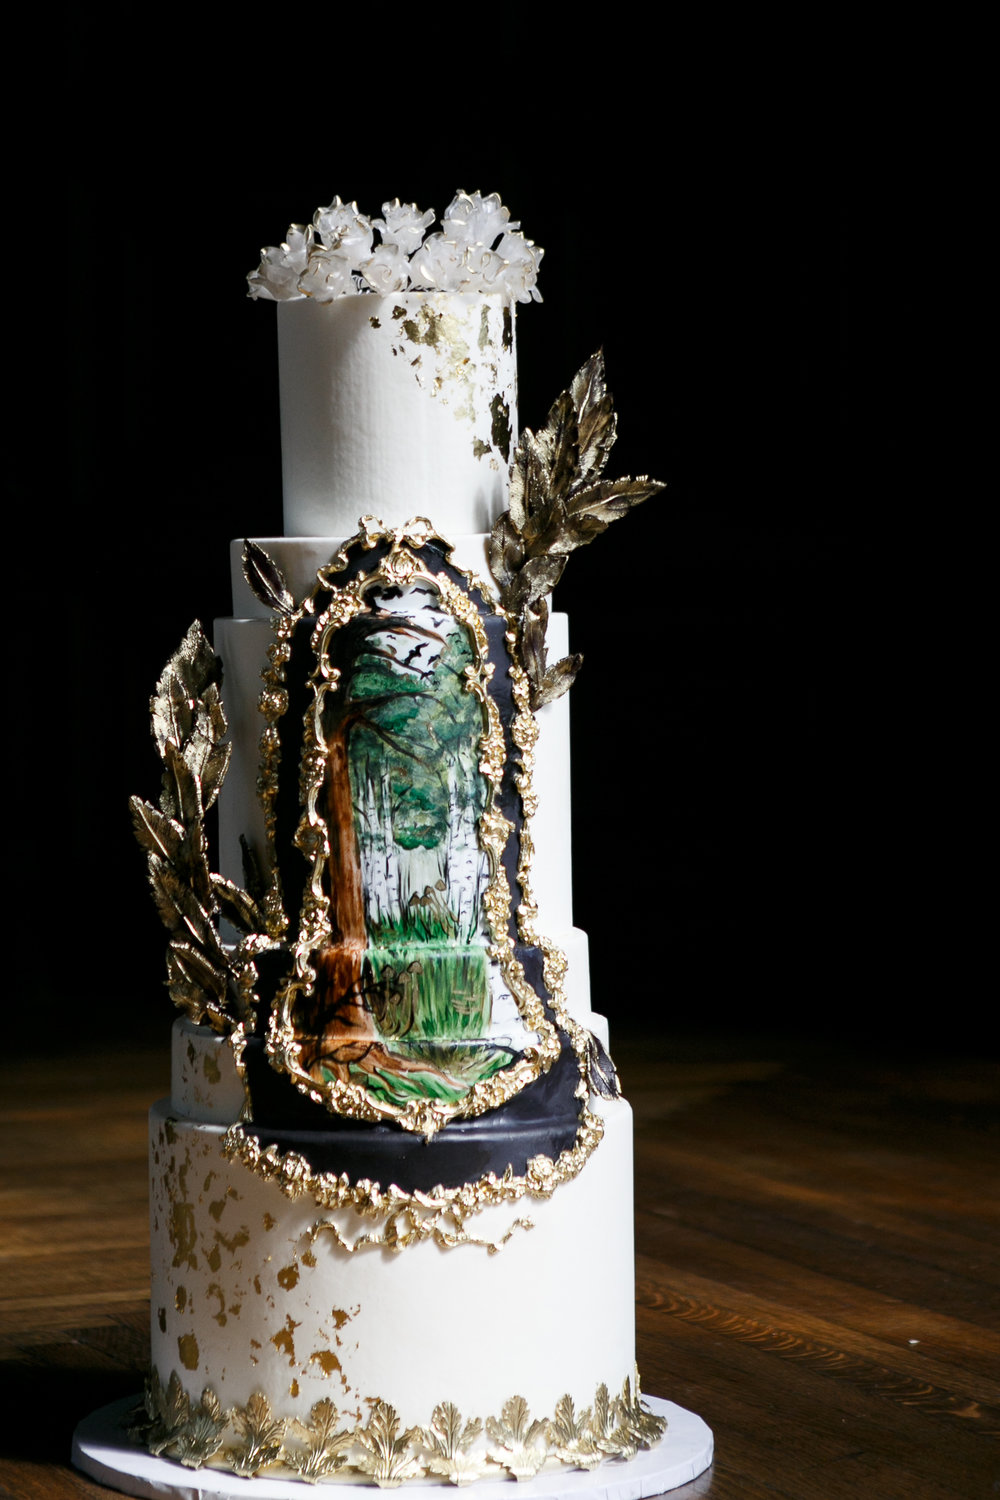 21 Woodland Wedding Cake Hand Painted Wedding Cake.jpg